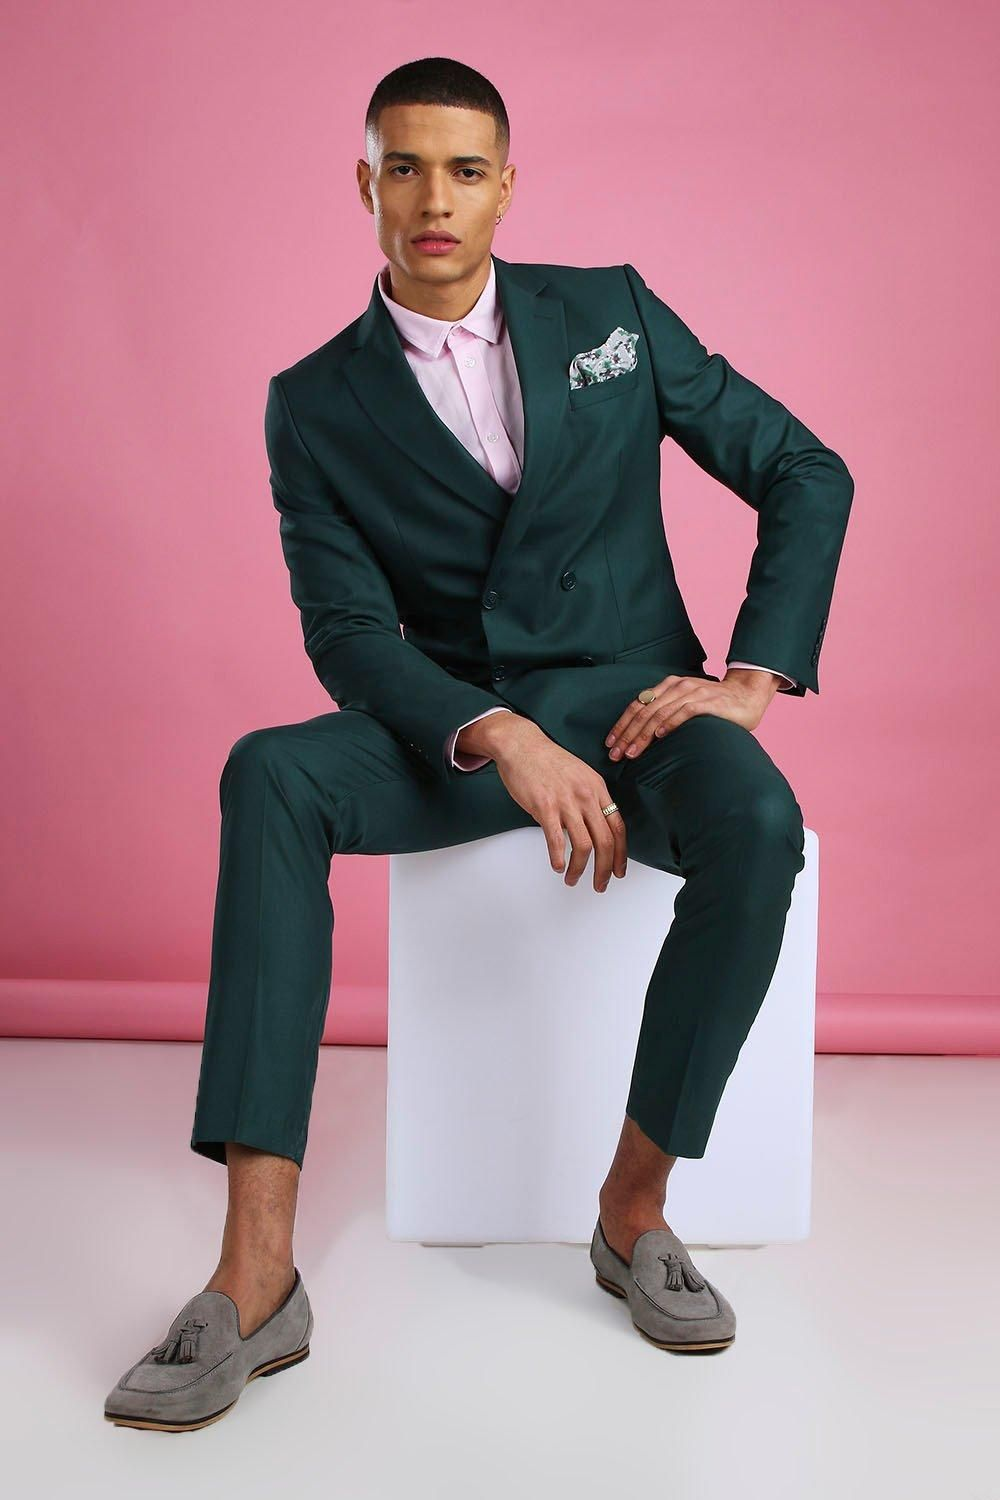 Skinny Plain Double Breasted Suit Jacket | boohooMAN in ...